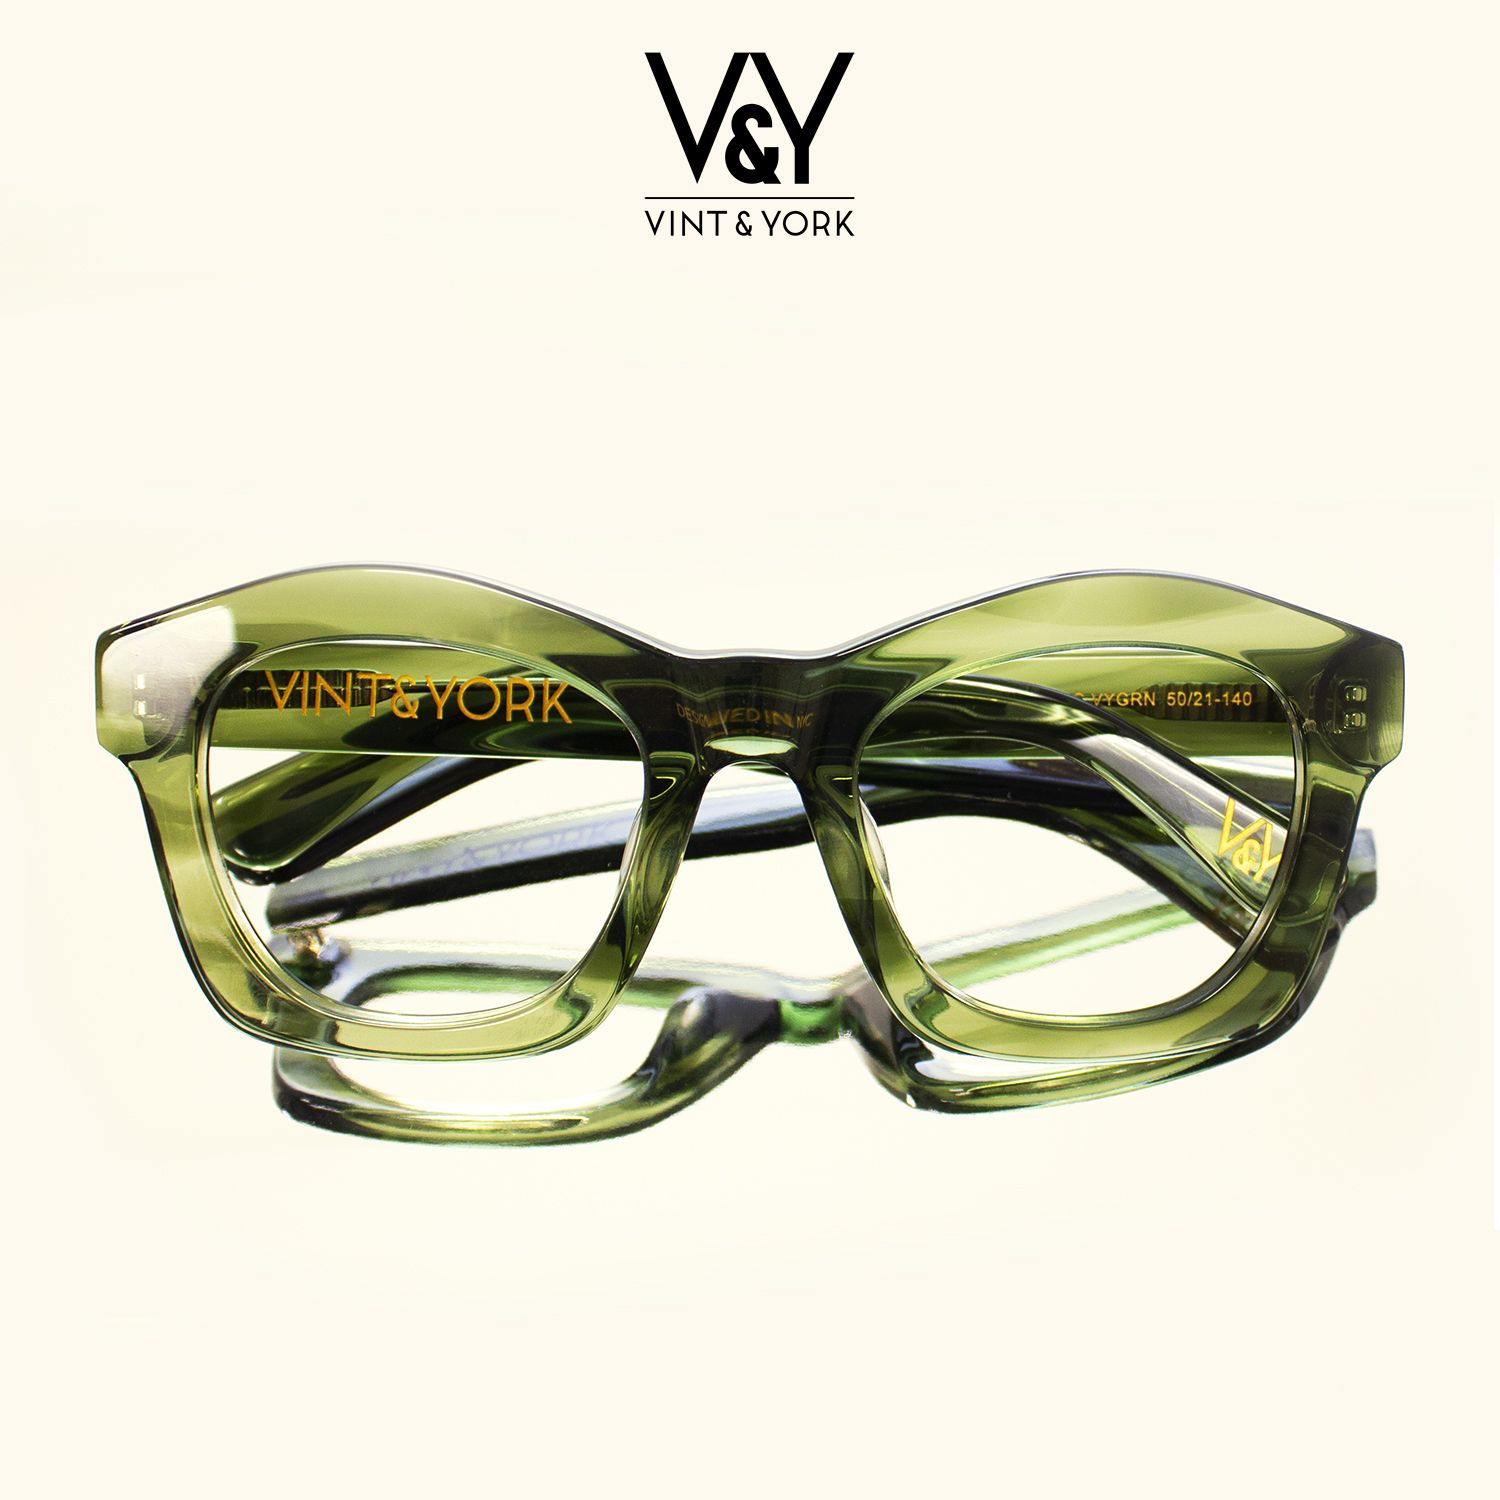 9c5a2c330887 Our beautiful Belle frame in Nori green. Suitable for all face shapes and a  perfect compliment to any style. Find it at Vint   York.